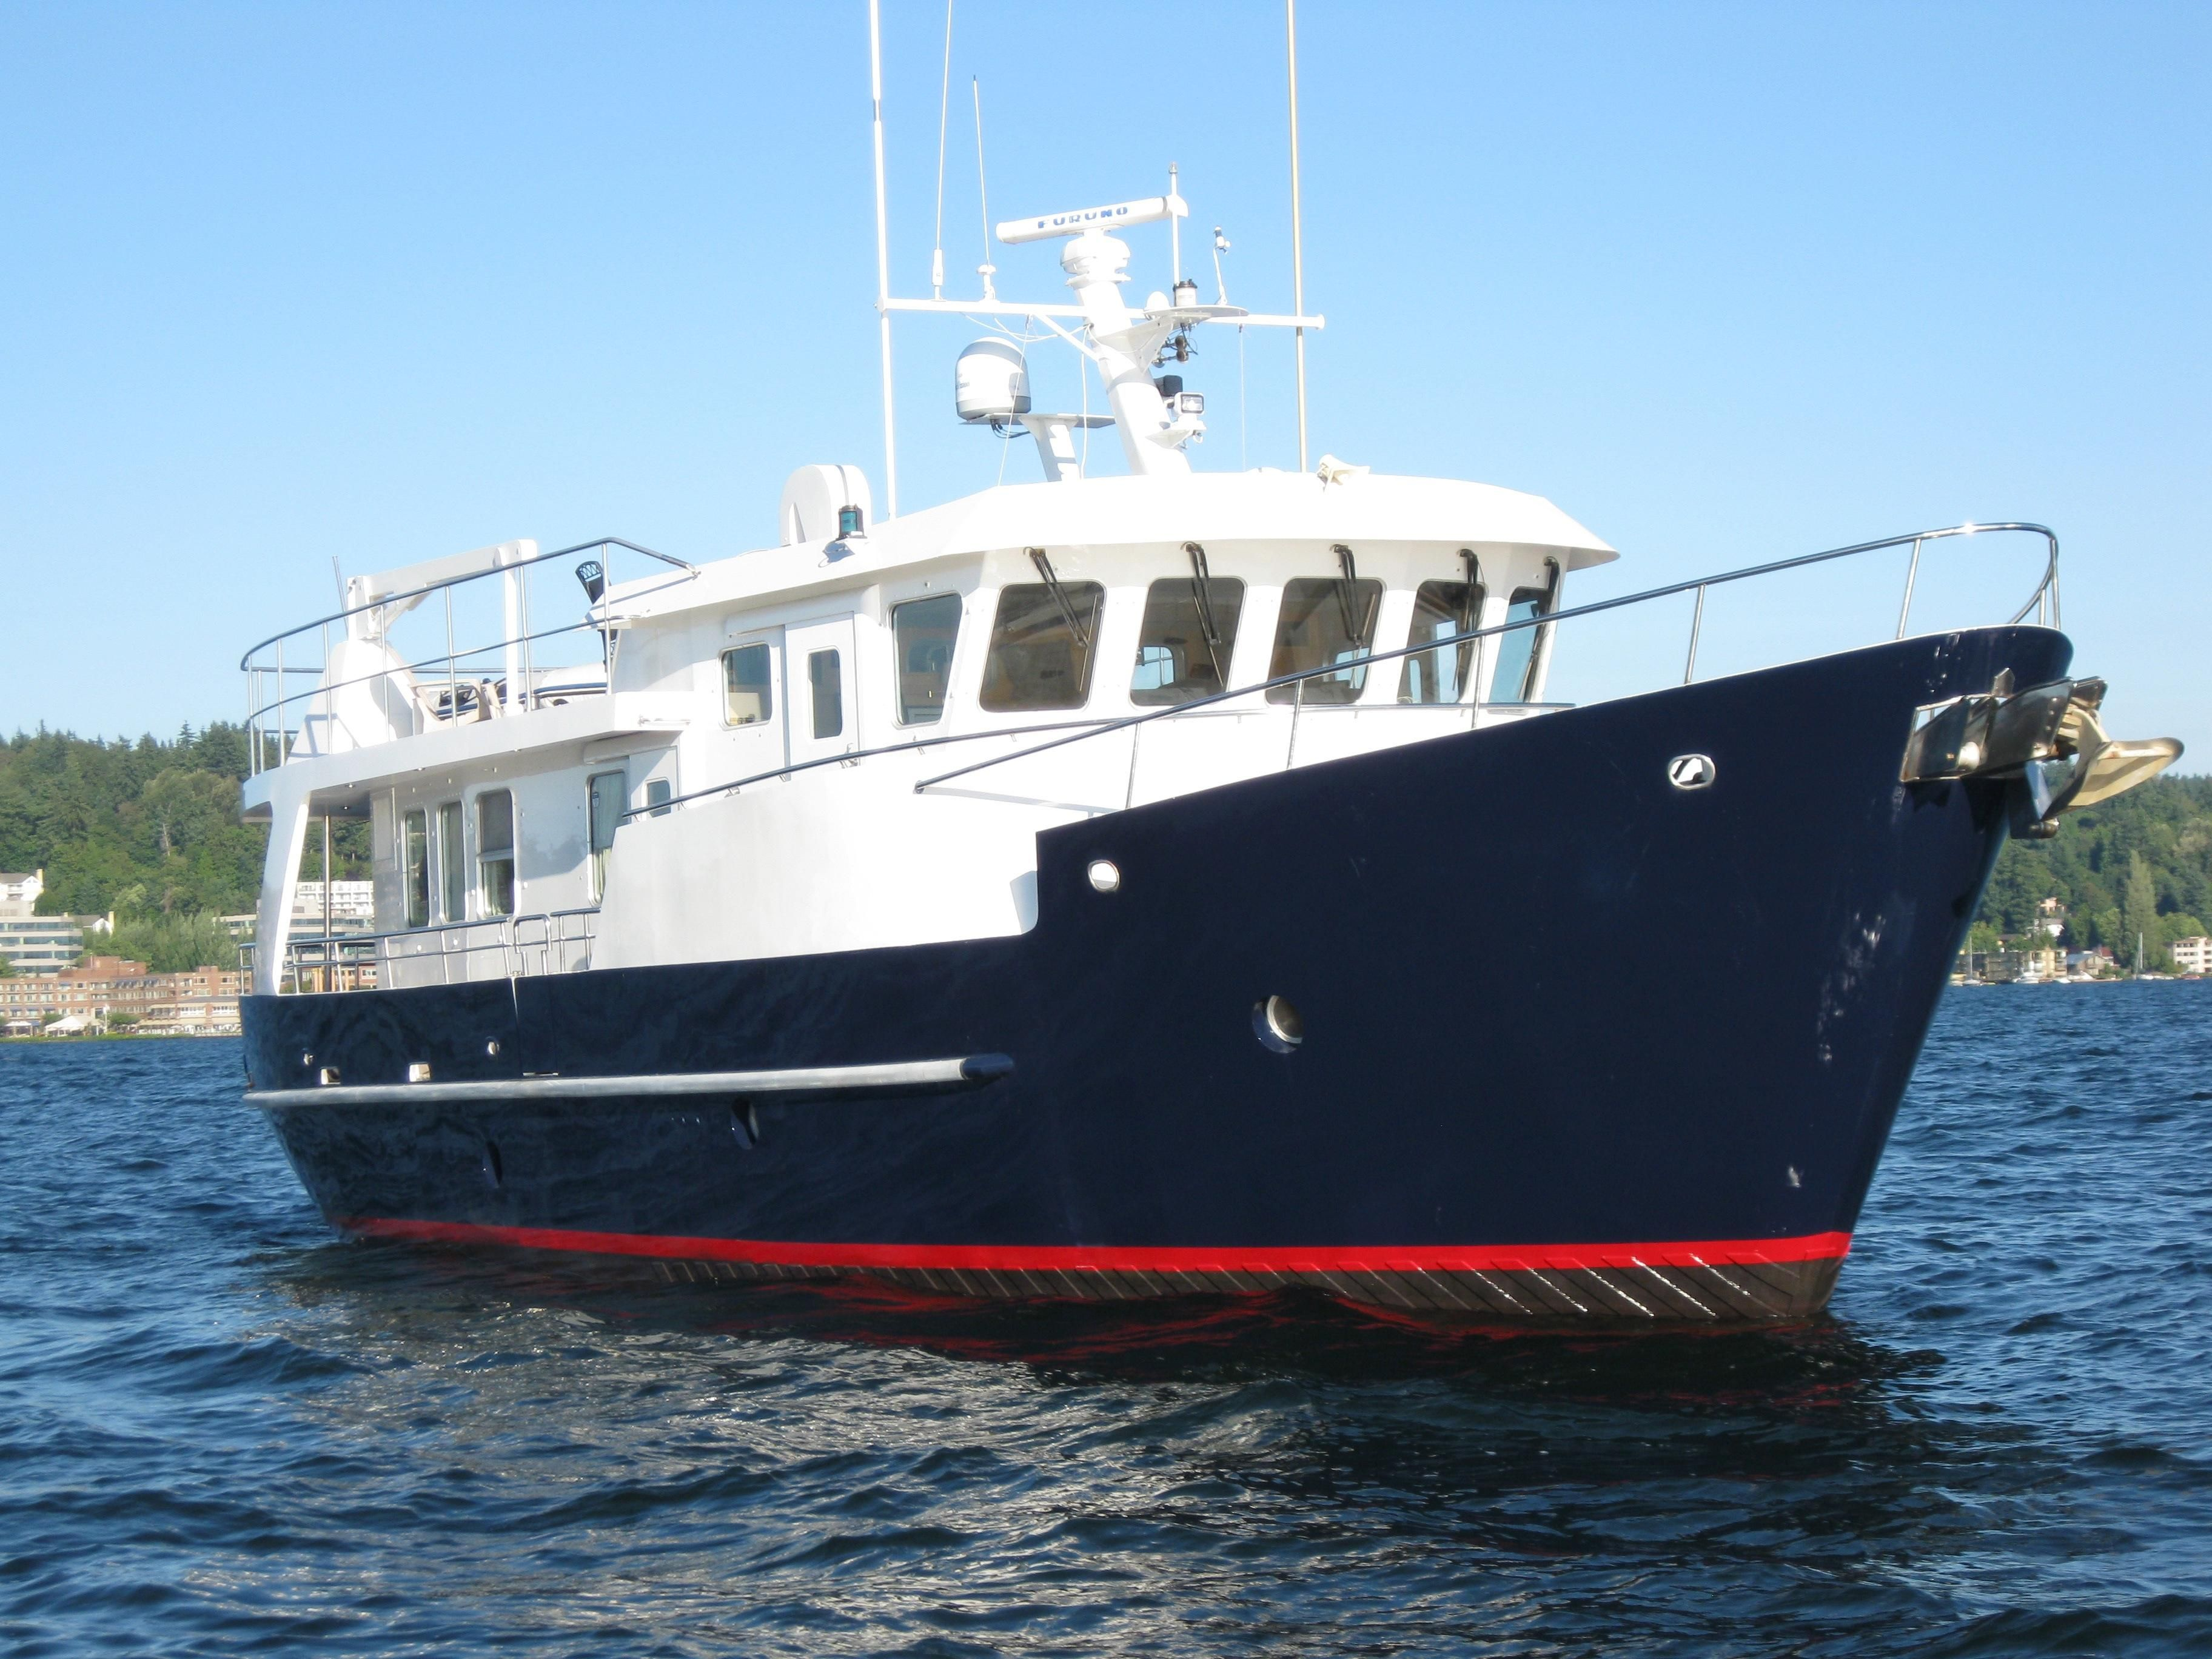 Cape Horn Boats For Sale >> 1999 Cape Horn Long Range Trawler Power Boat For Sale - www.yachtworld.com